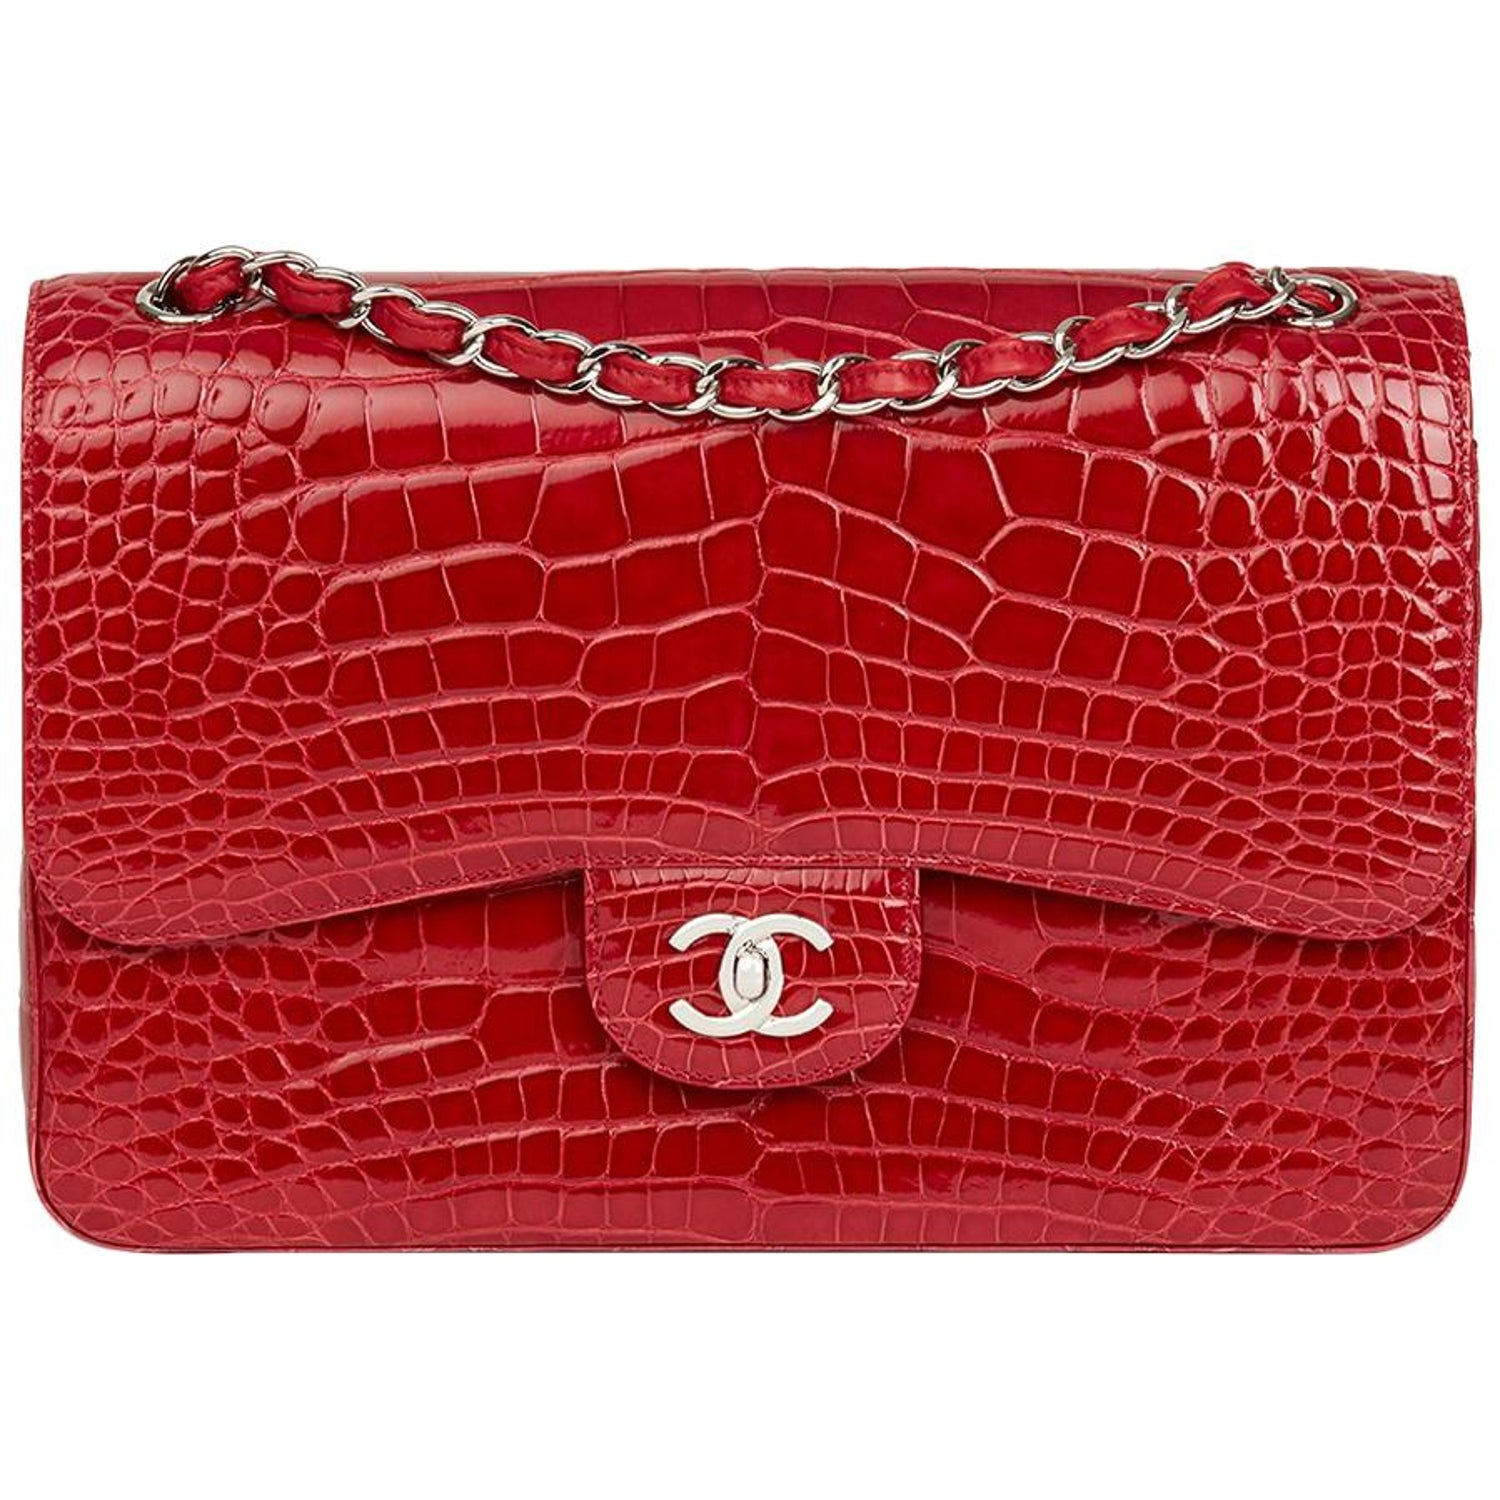 d728d7146c34b7 2013 Chanel Red Shiny Mississippiensis Alligator Jumbo Classic Double Flap  Bag at 1stdibs